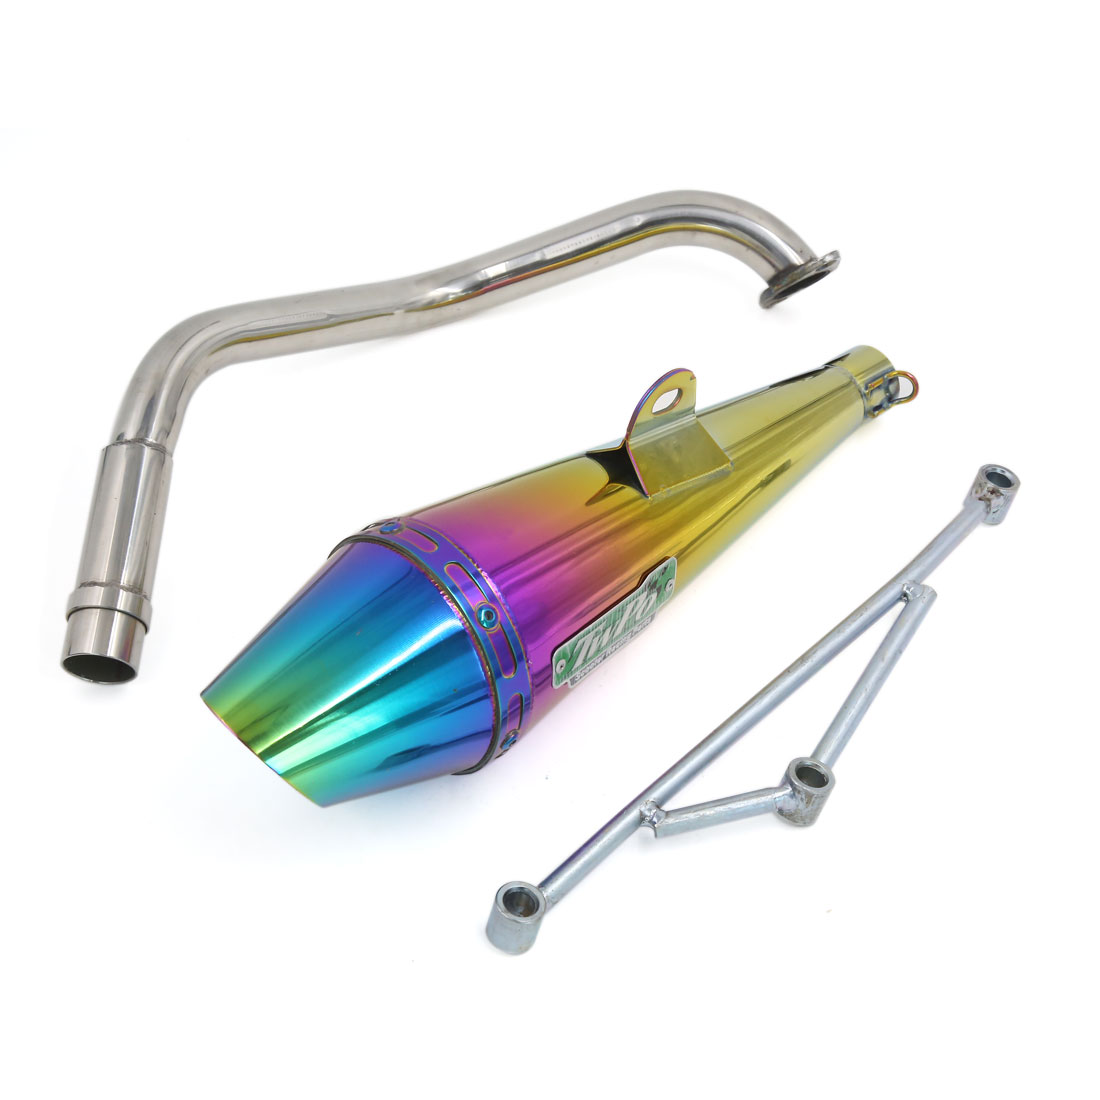 Colorful Stainless Steel Slip On Exhaust Pipe Muffler 32mm Inlet for Motorcycle